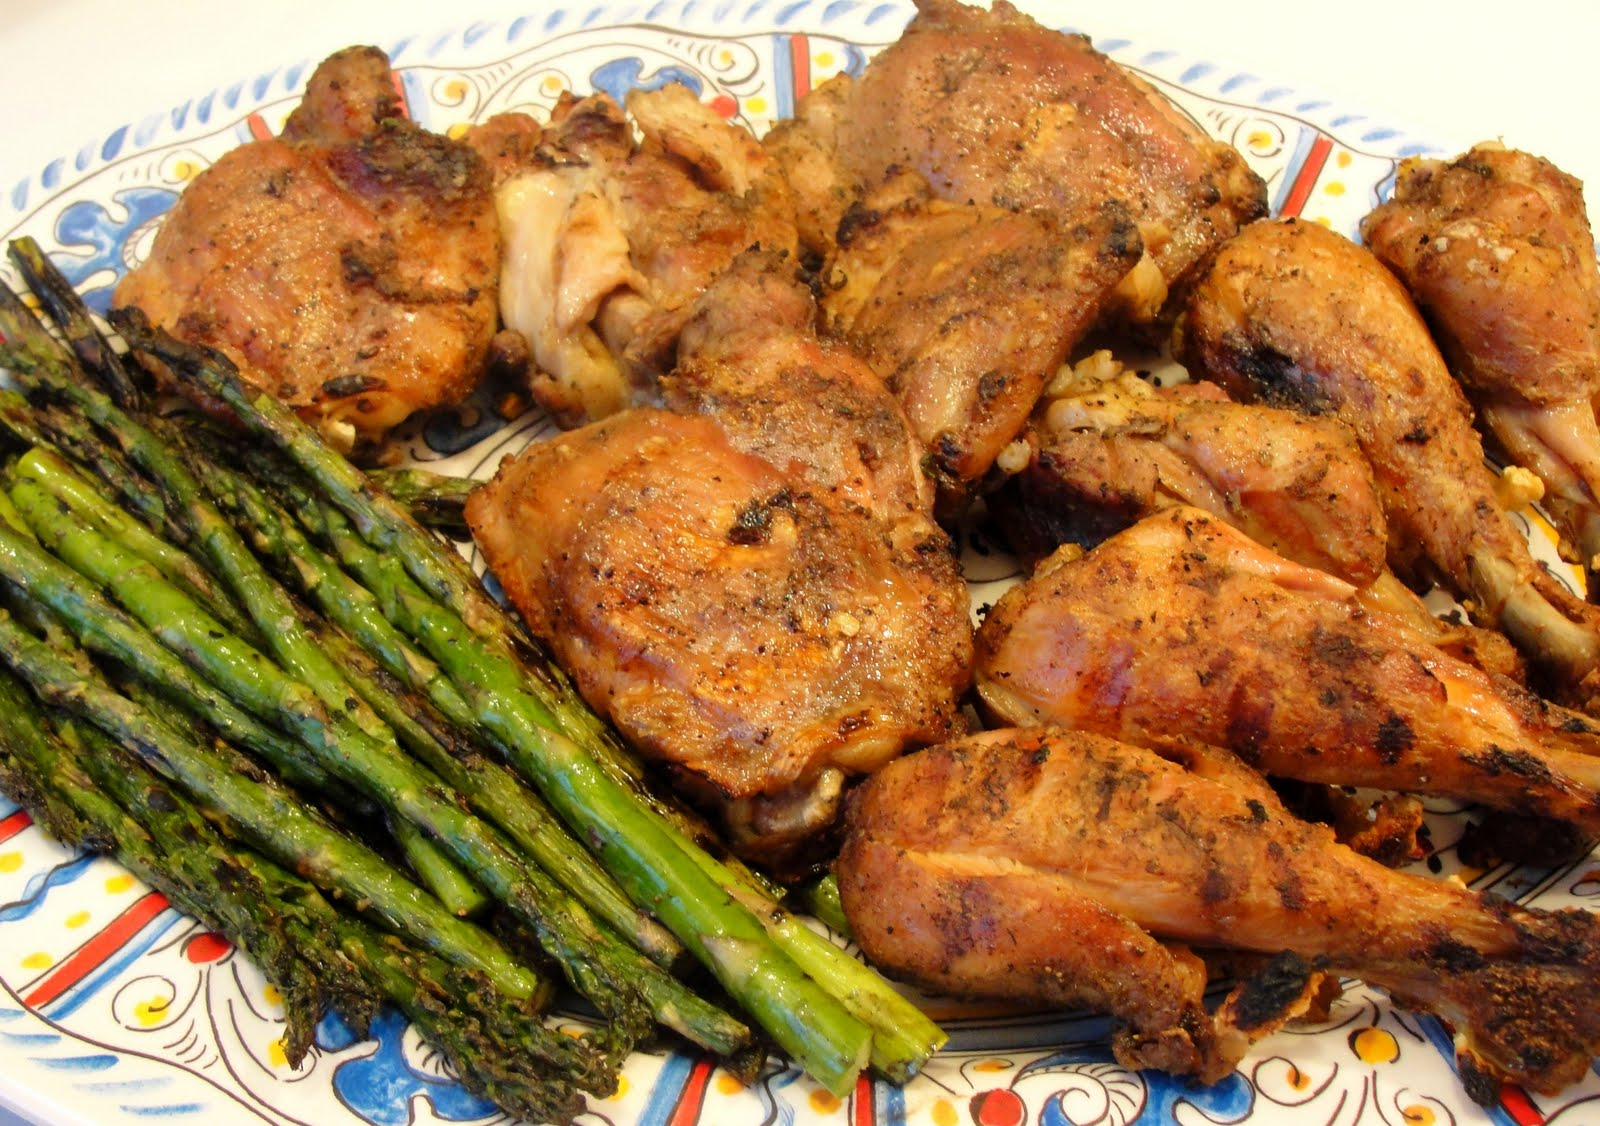 There's always thyme to cook...: Grilled Salt and Pepper Chicken